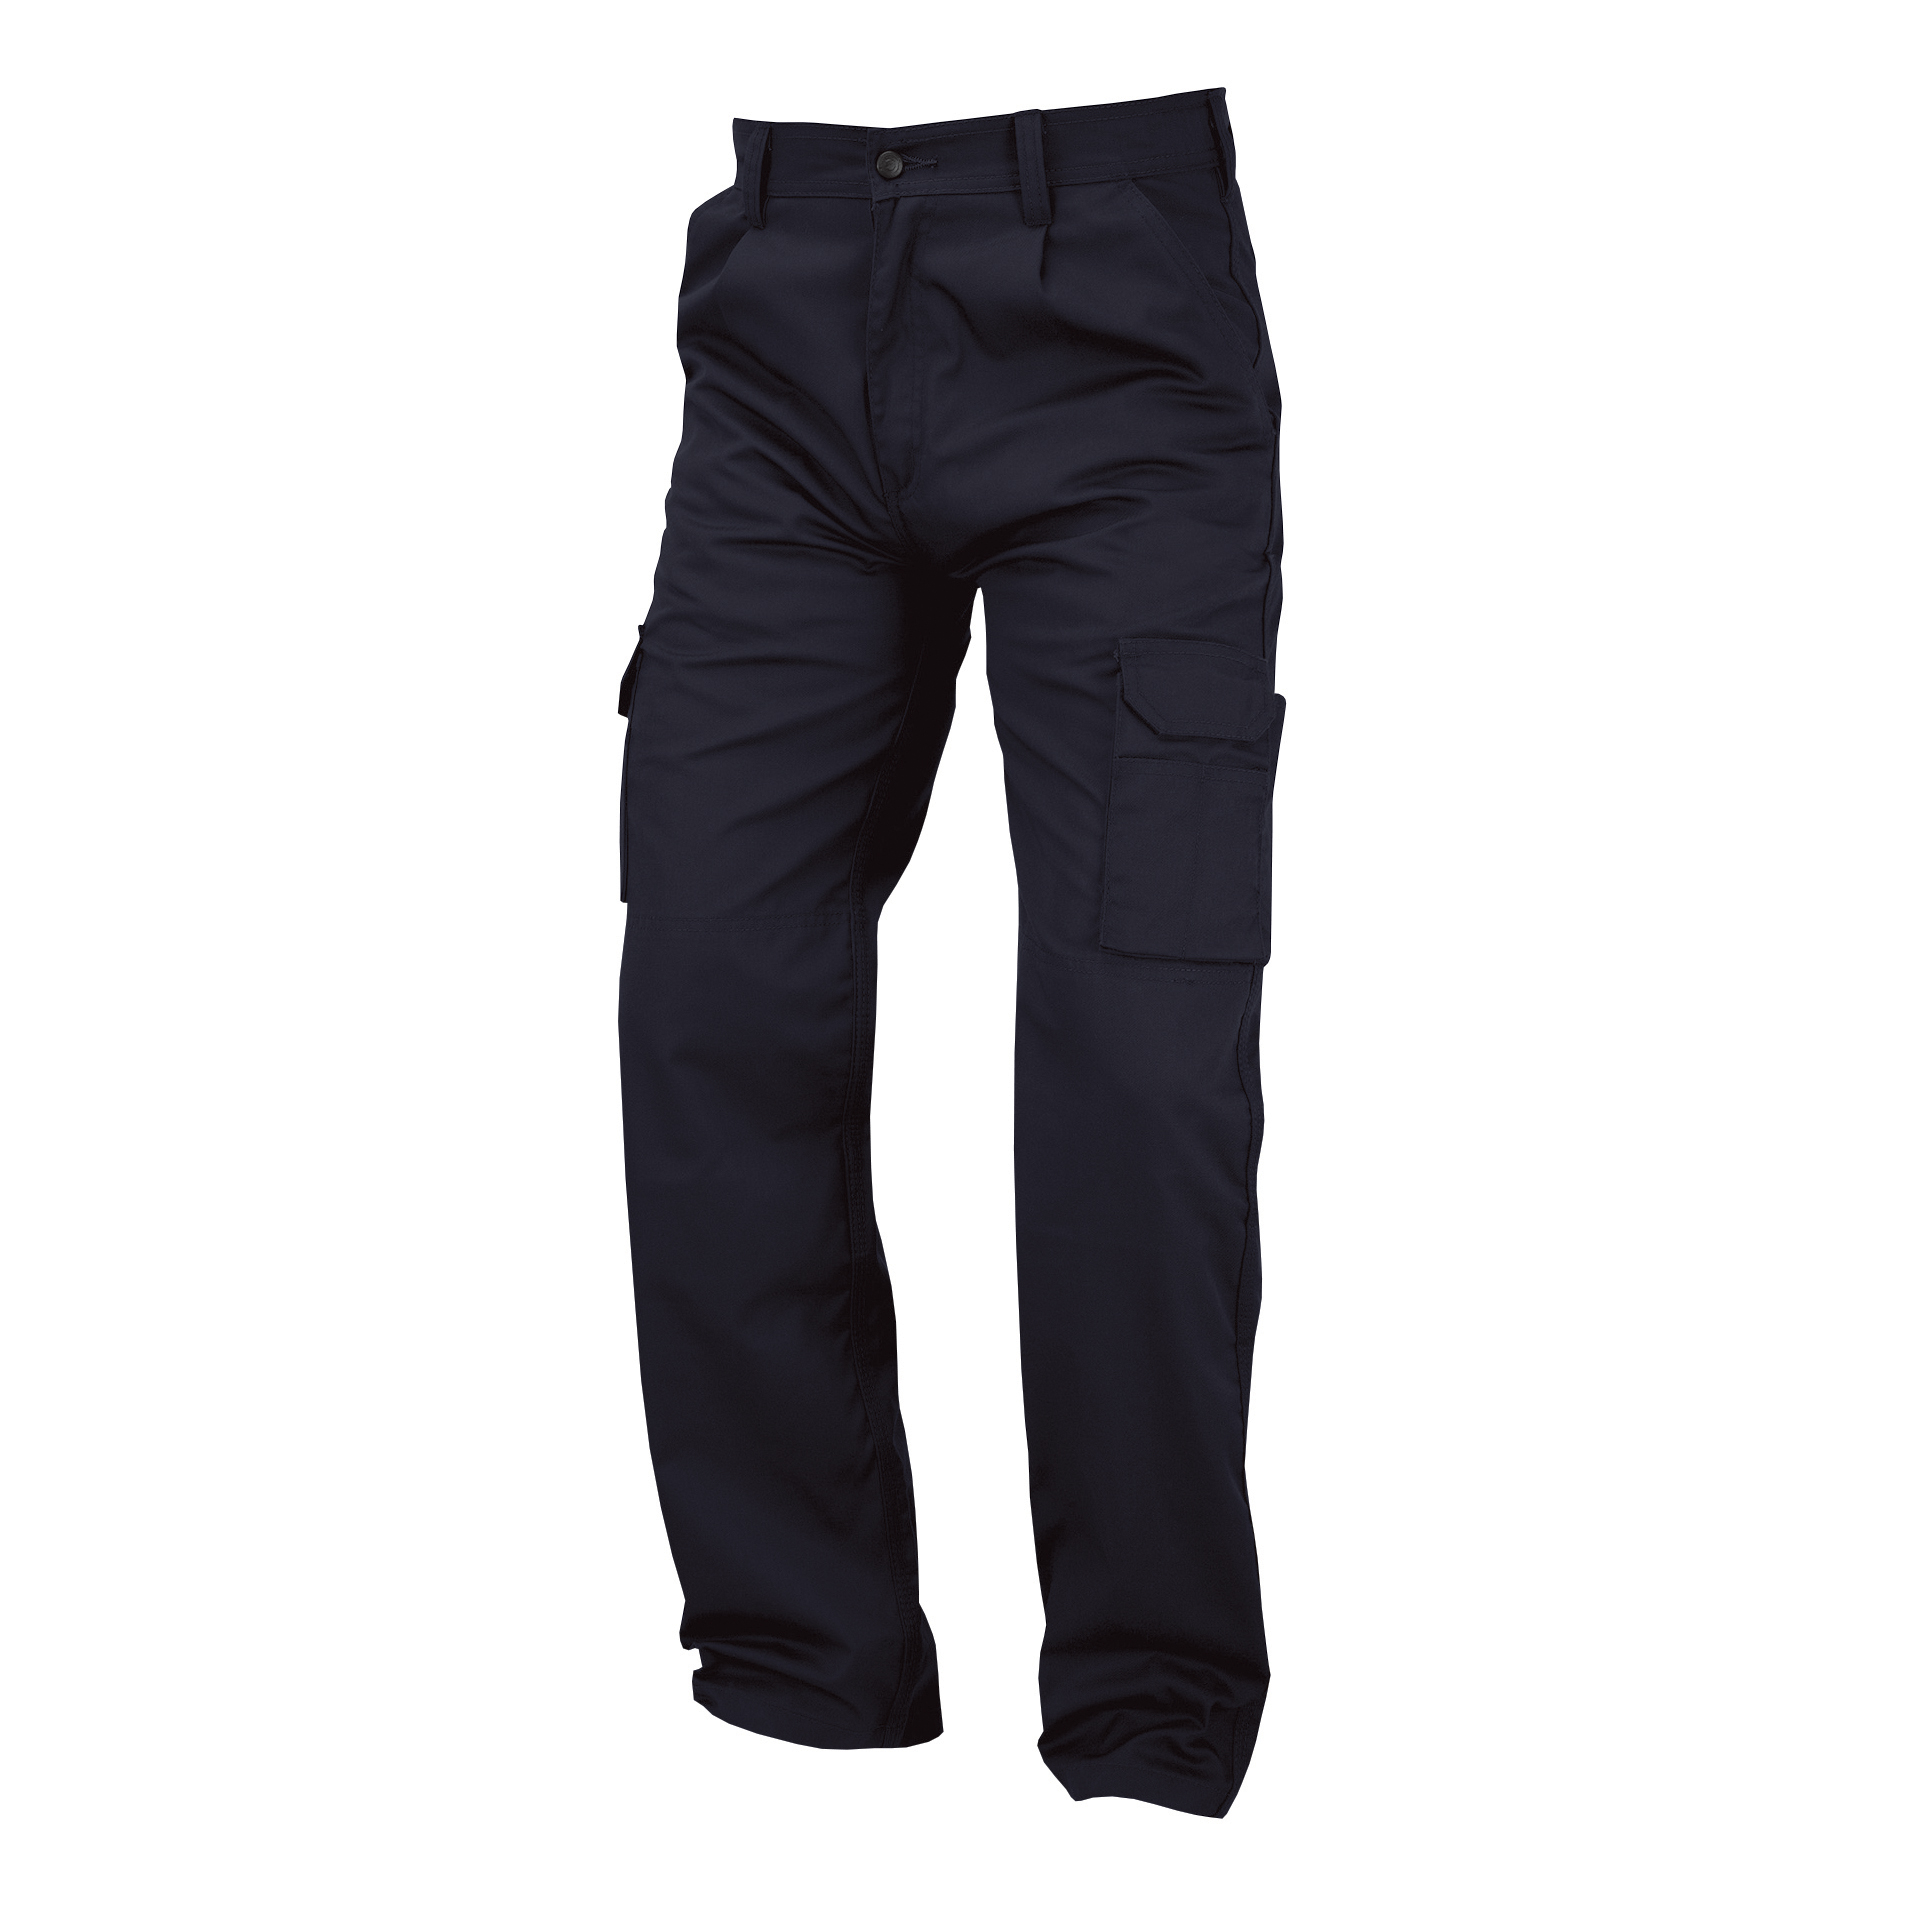 Combat Trousers Multifunctional 30in Regular Navy Blue Ref PCTHWN30 *Approx 3 Day Leadtime*